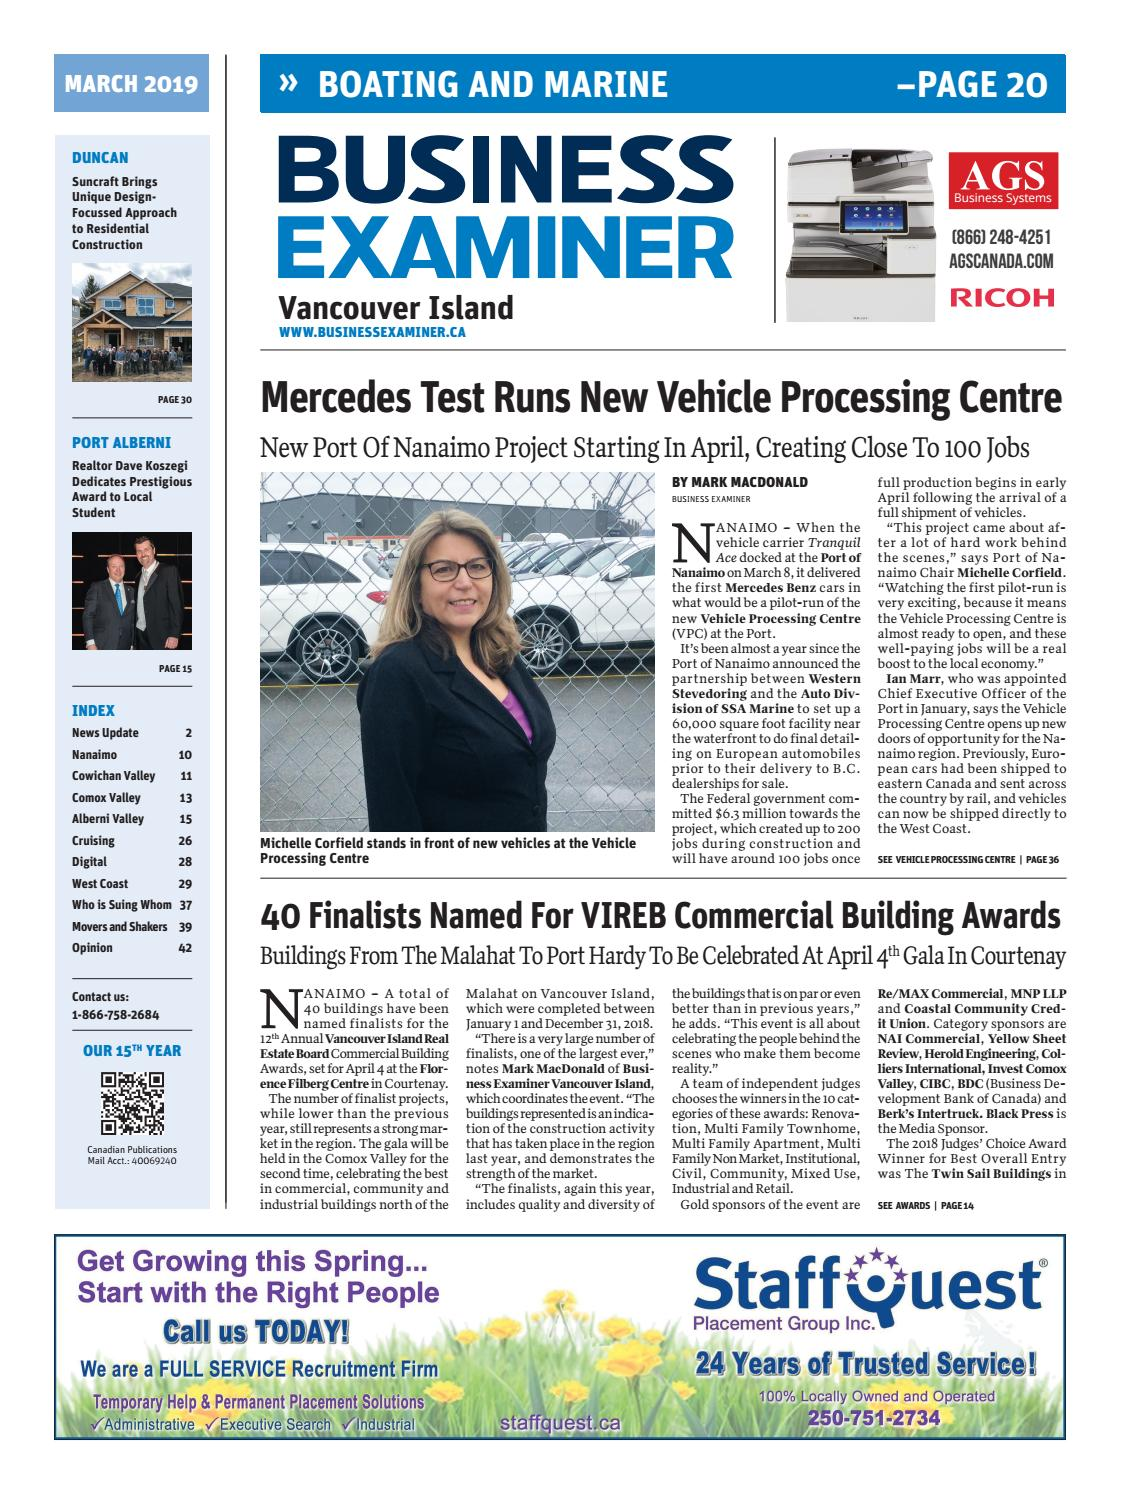 Business Examiner Vancouver Island - March 2019 by Business